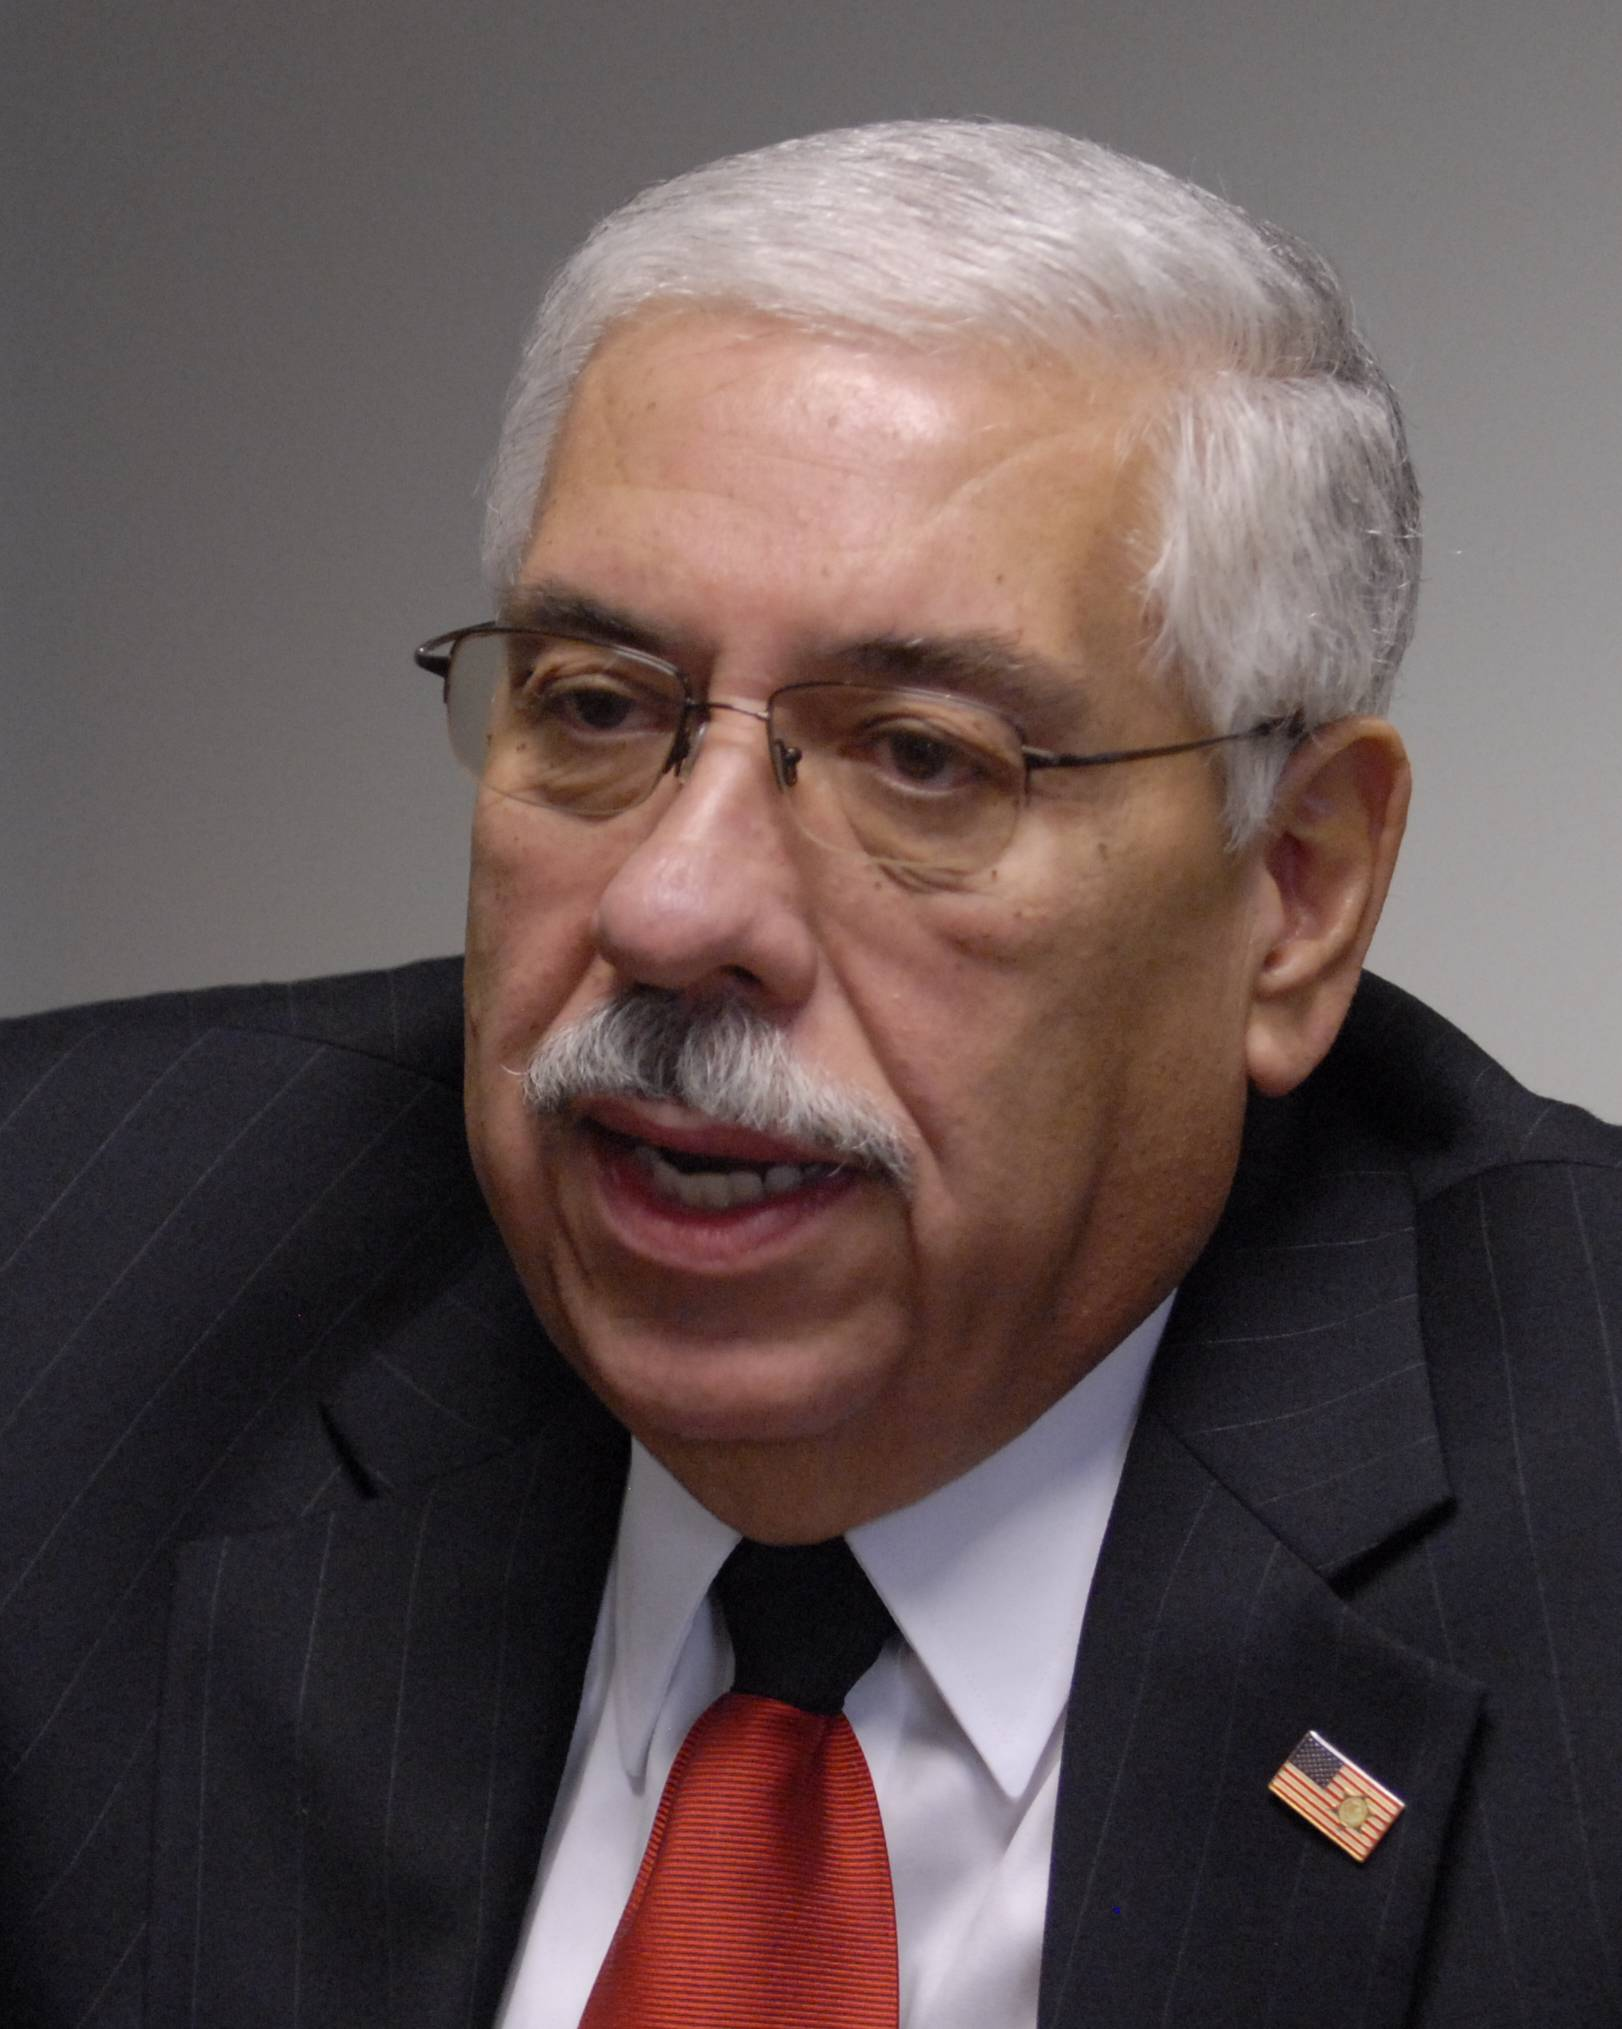 Analysis: Berrios loss the latest example of money takedown of Democratic machine